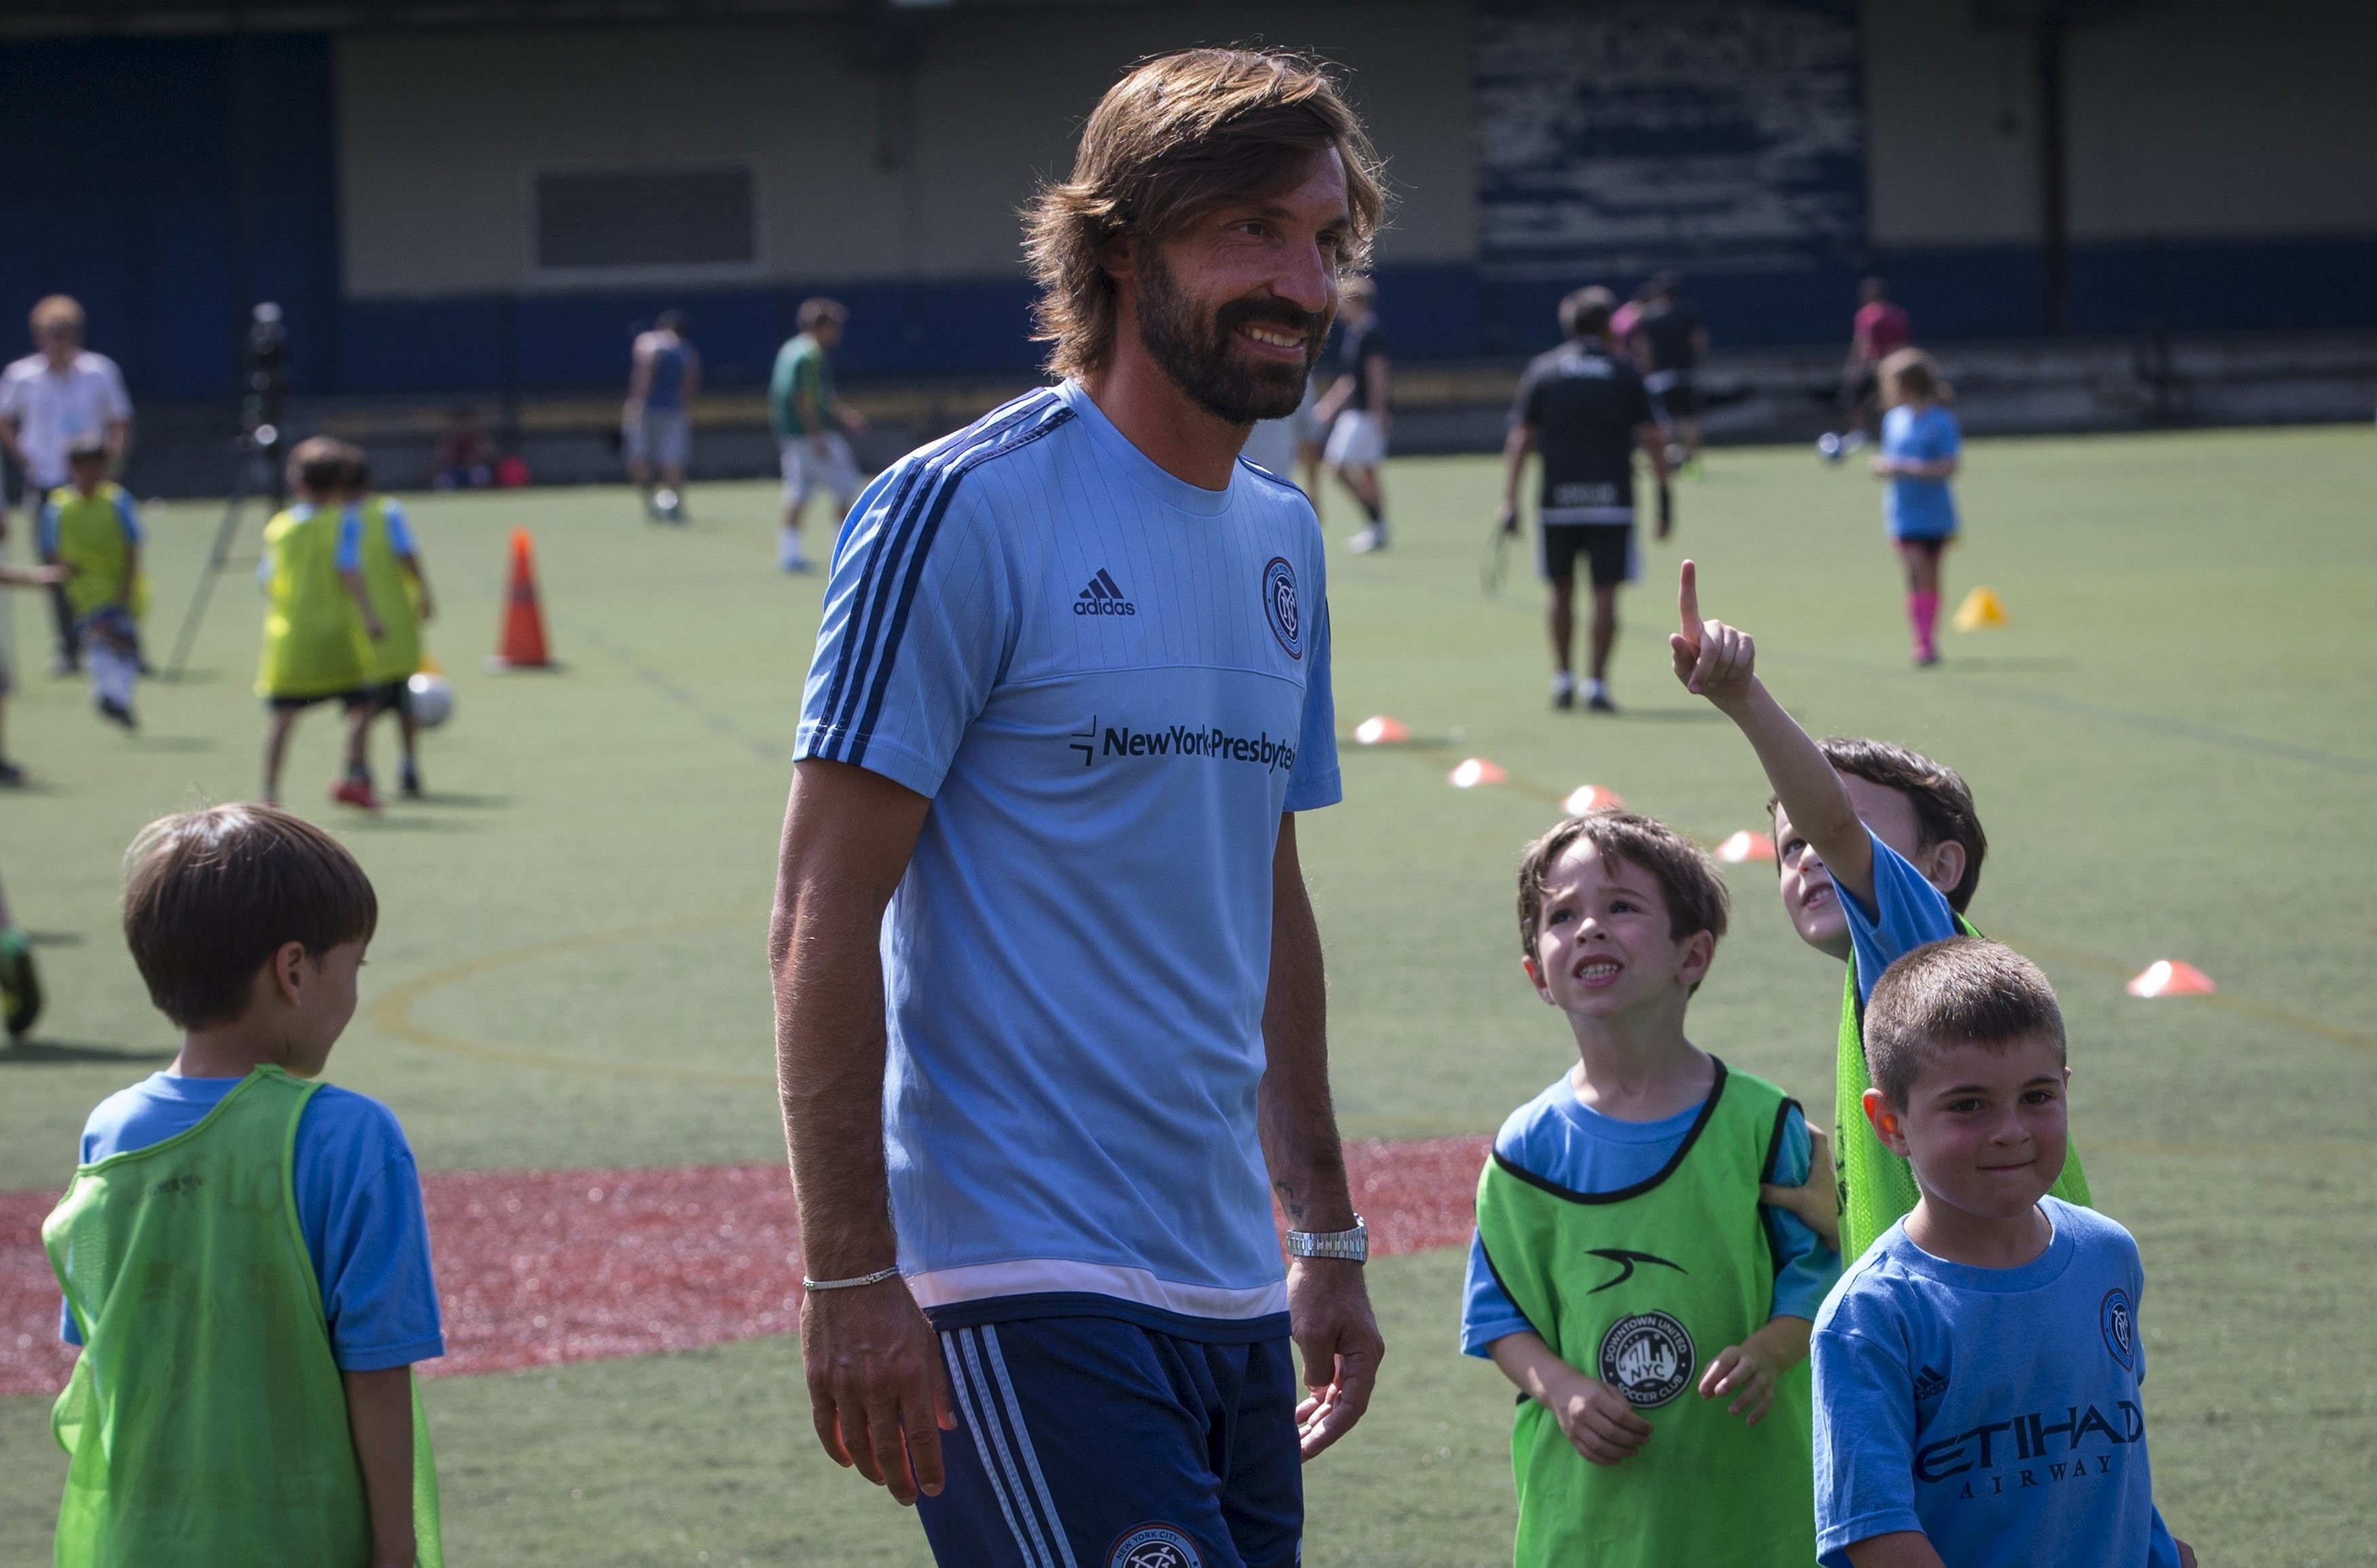 2015, MLS, New York City FC, Andrea Pirlo (LaPresse)